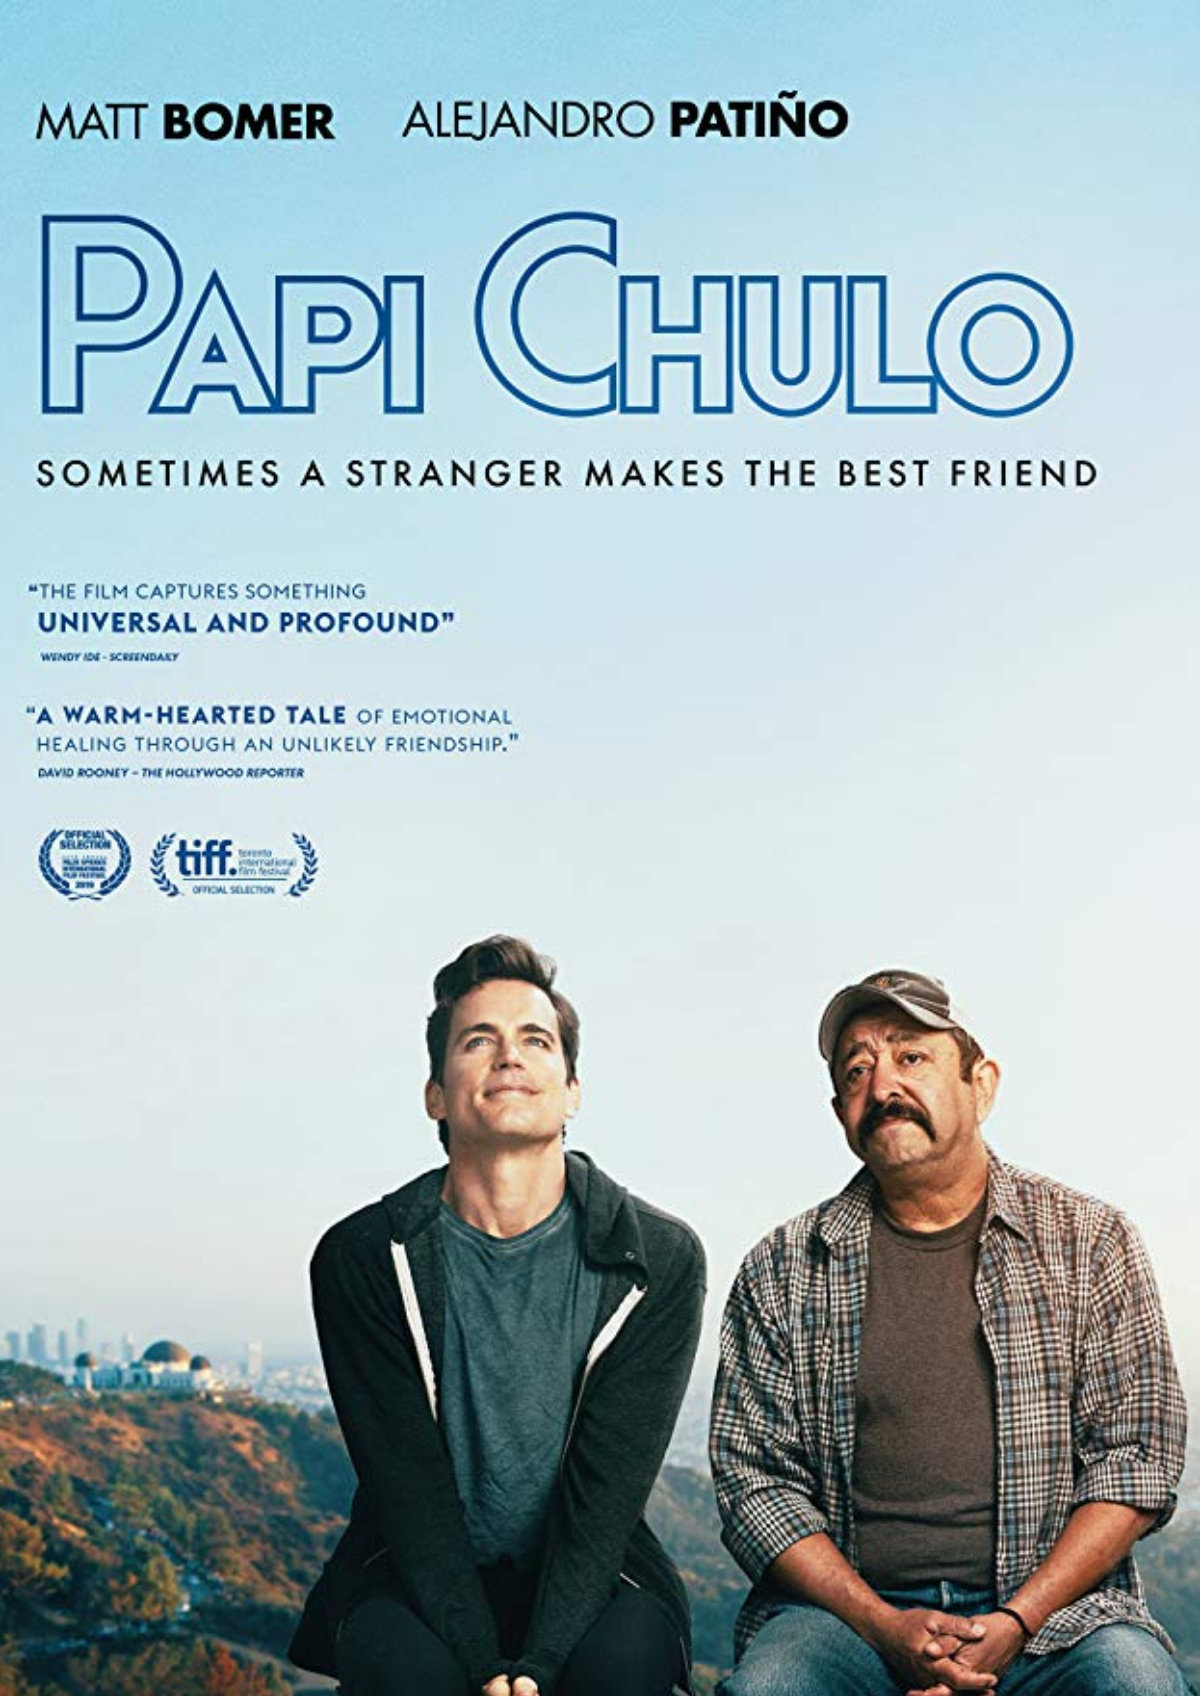 'Papi Chulo' movie poster